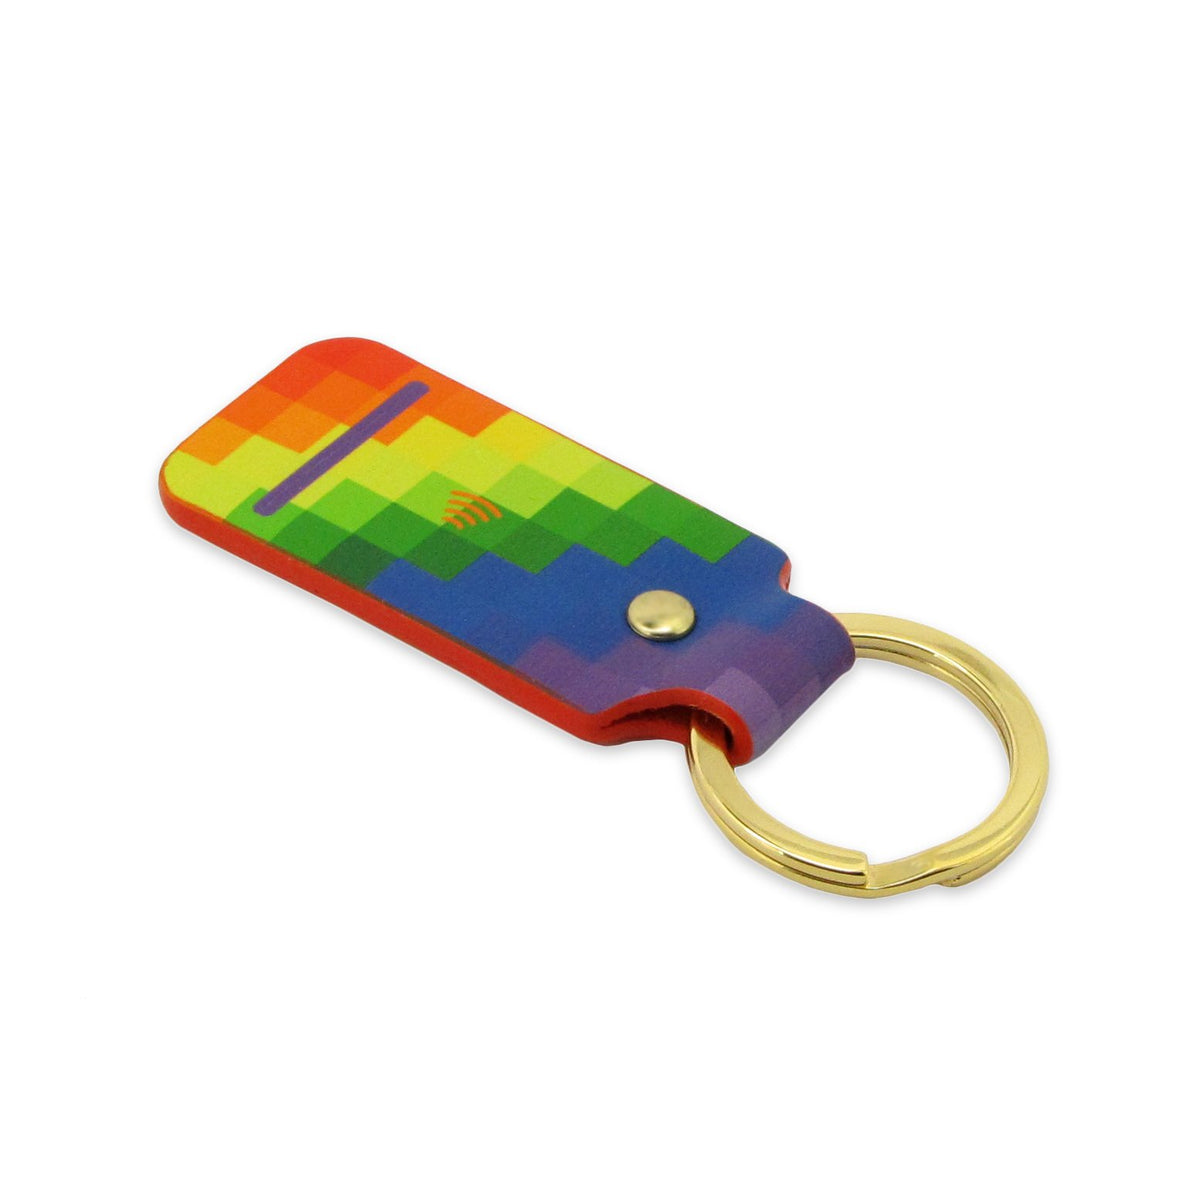 Leather Contactless Payment Key Fob - Rainbow for the National Health Service Tovi Sorga